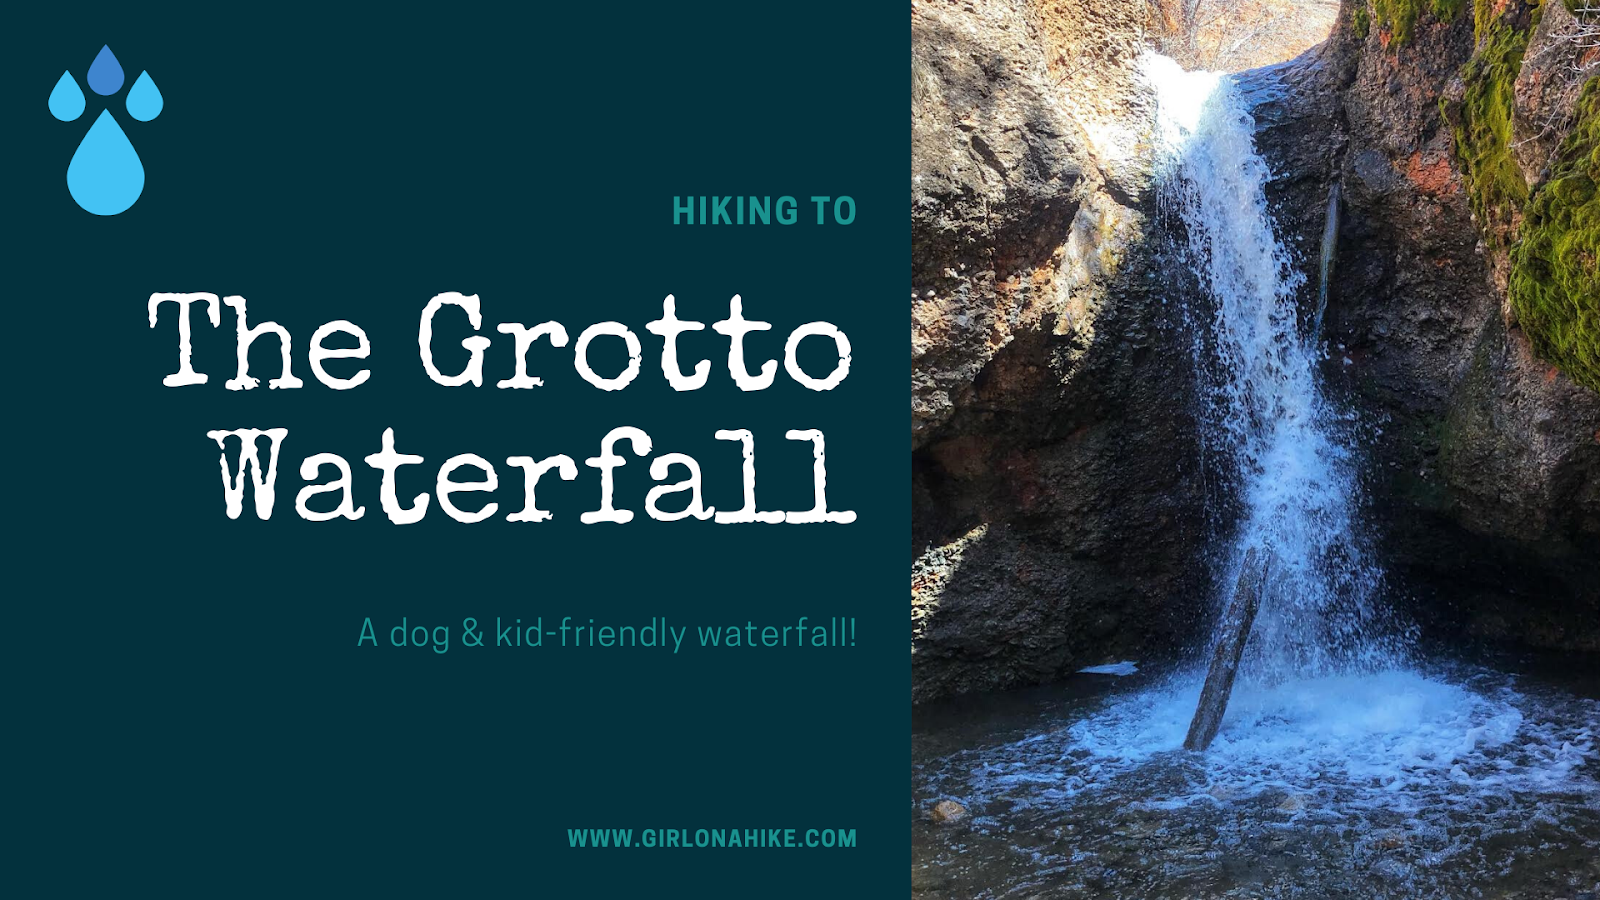 The Grotto Trail & Waterfall, Nebo Scenic Loop Road trails, Waterfalls in Utah